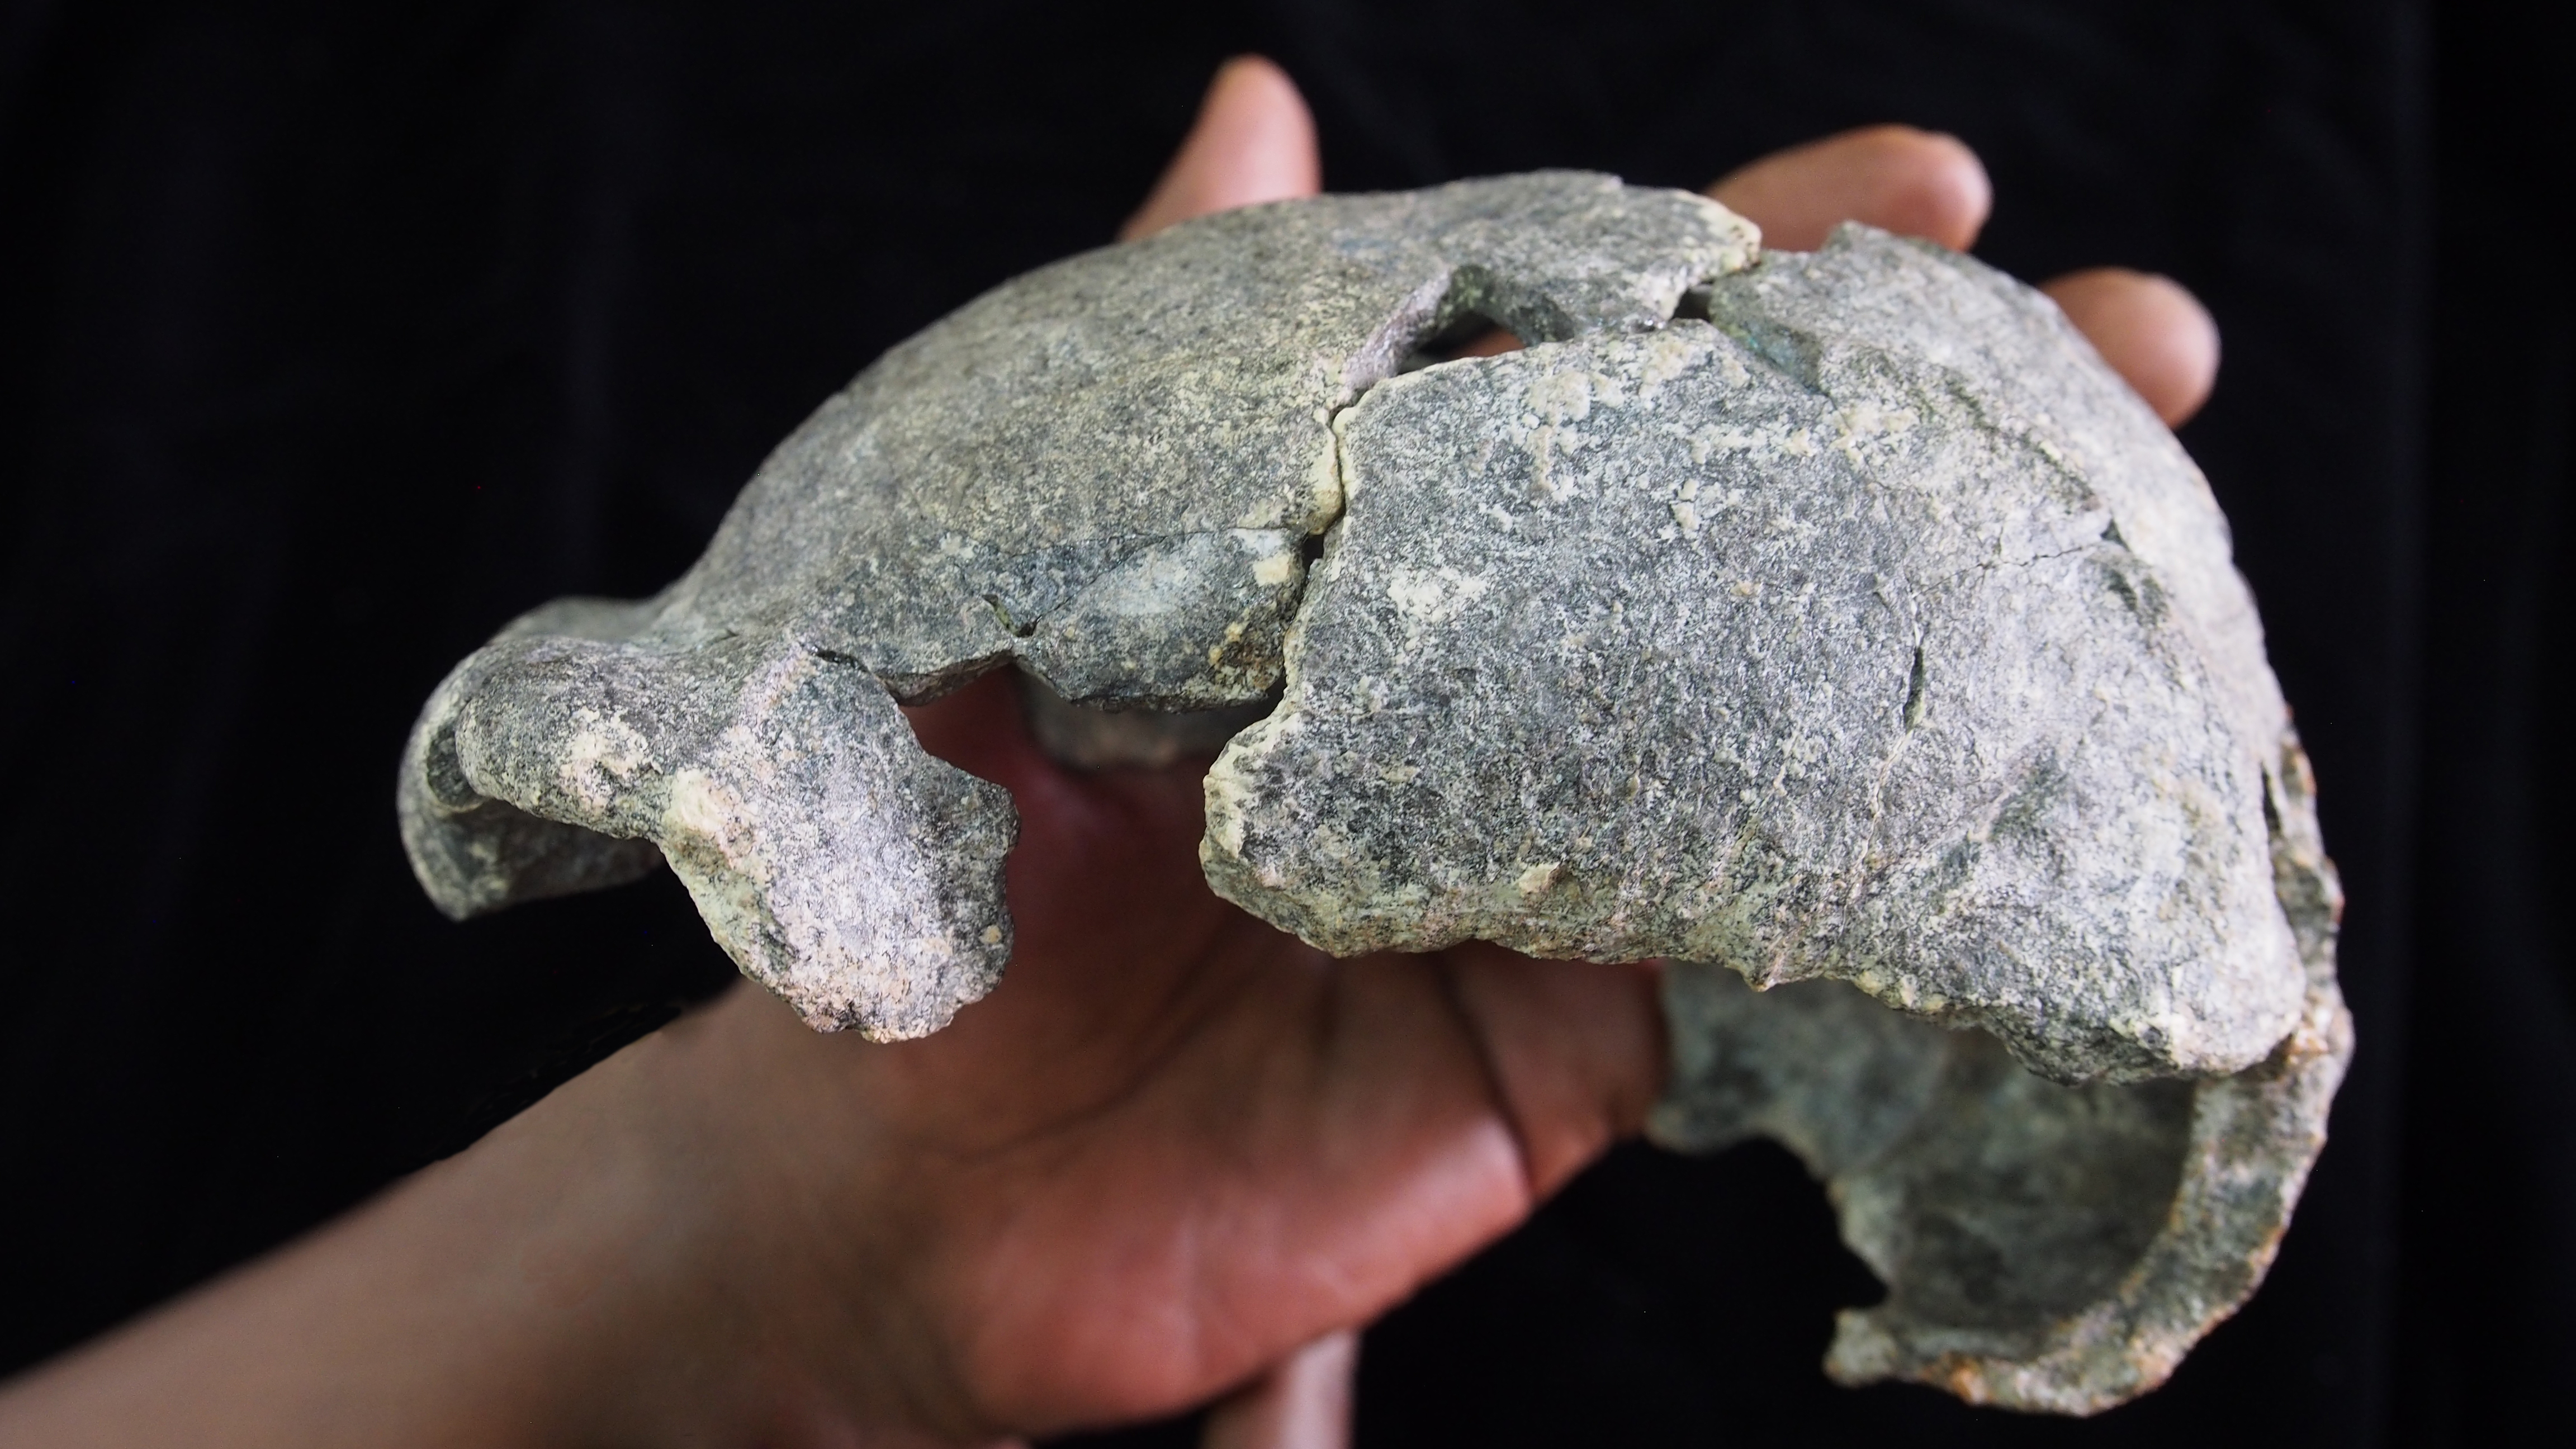 These Skulls From Ancient Humans Might Provide Clues About Early Mating Practices